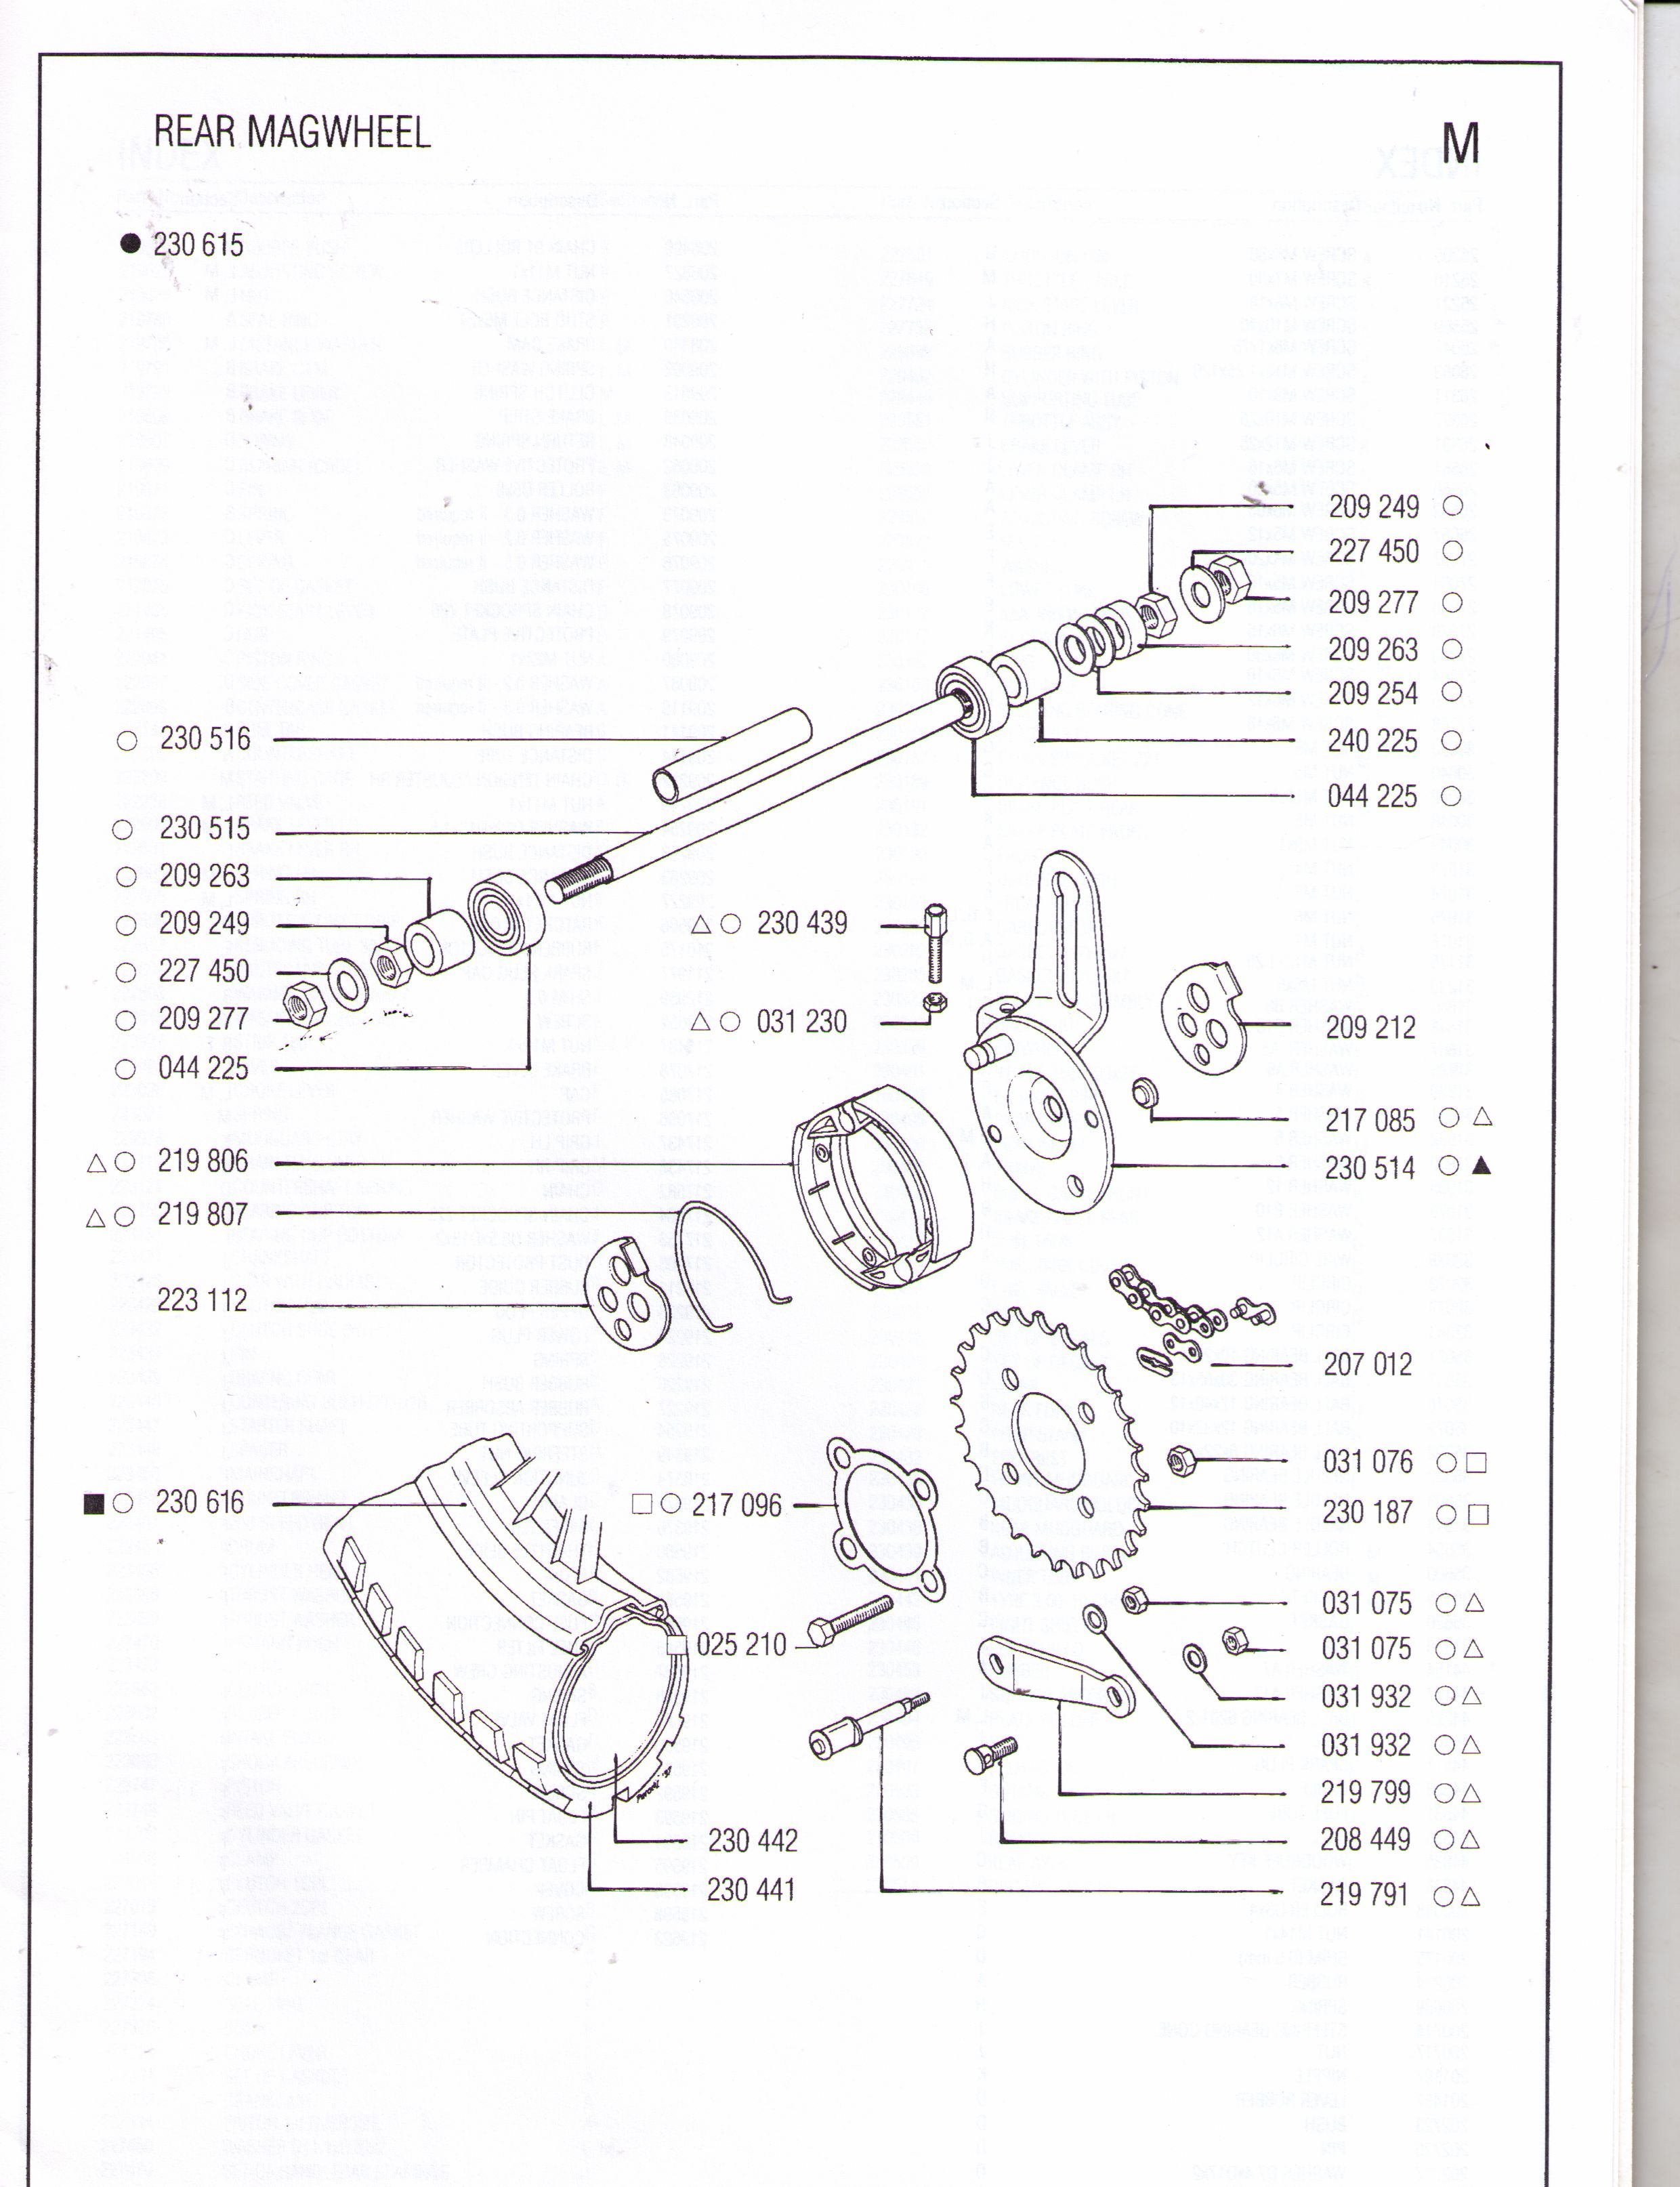 Ford Aerostar Diagram Great Design Of Wiring Engine 95 Fuse Box And 94 Cooling System